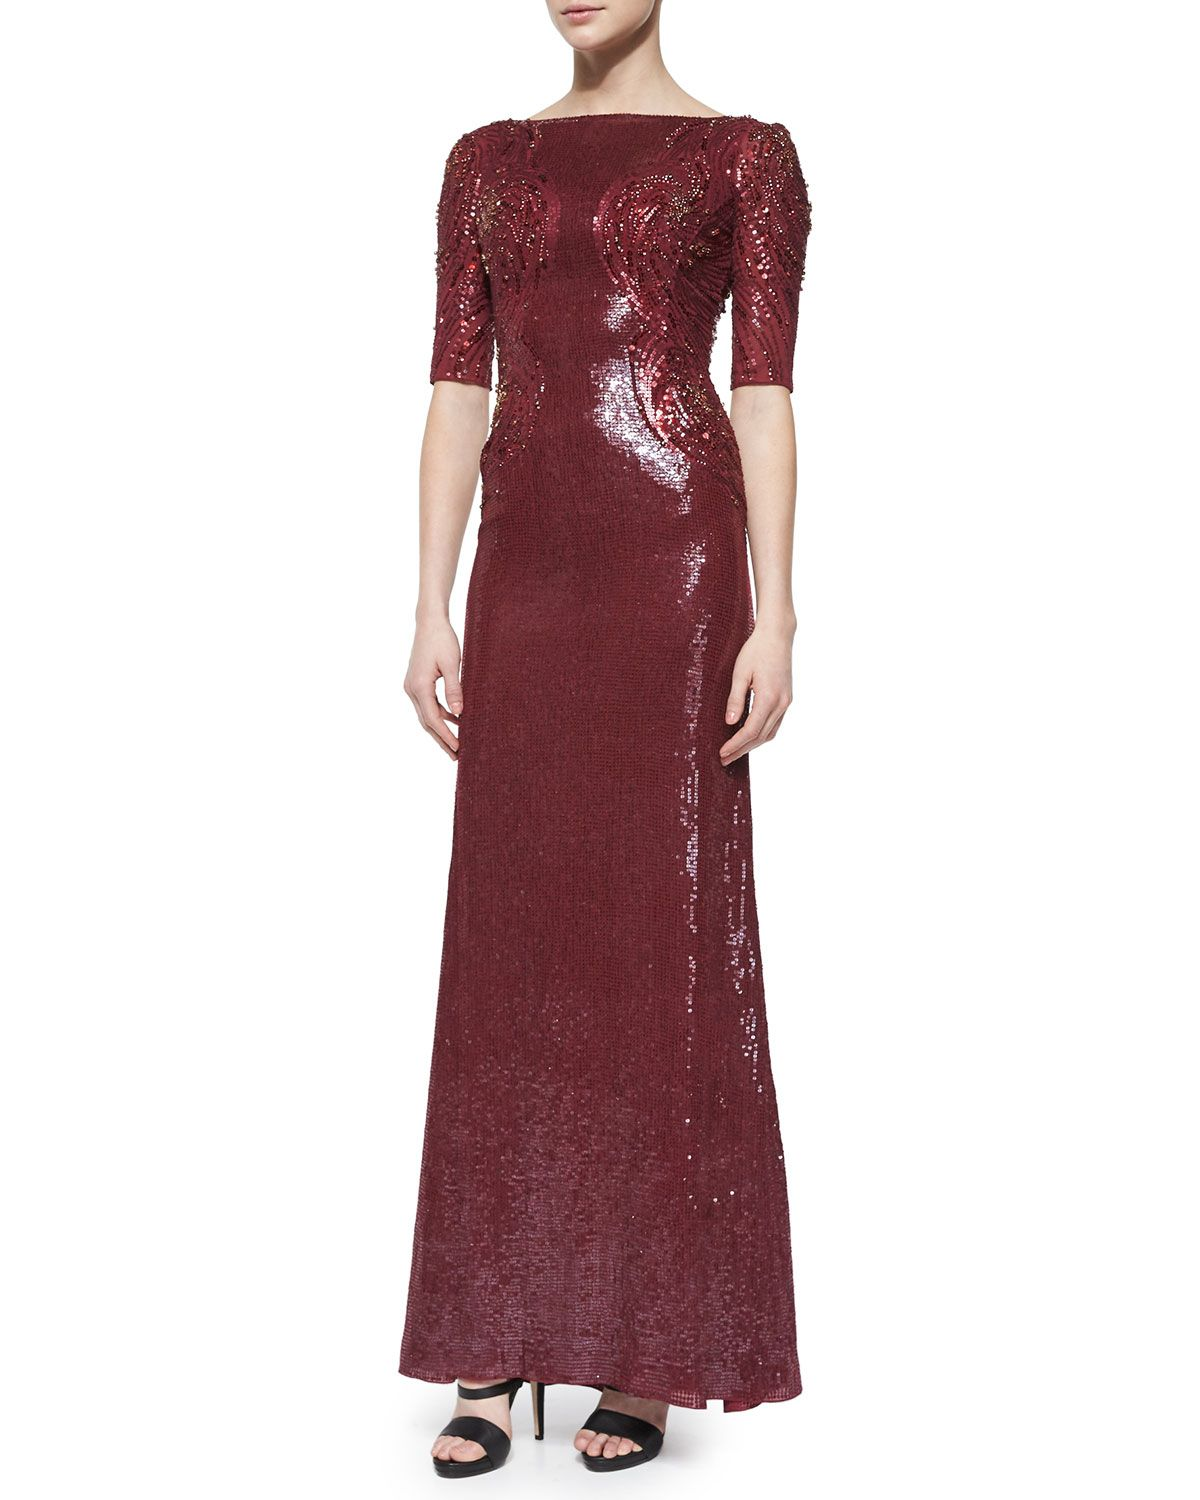 15 Stunning Marsala Dresses for the MOB Jenny Packham #dress wedding ideas, wedding inspiration